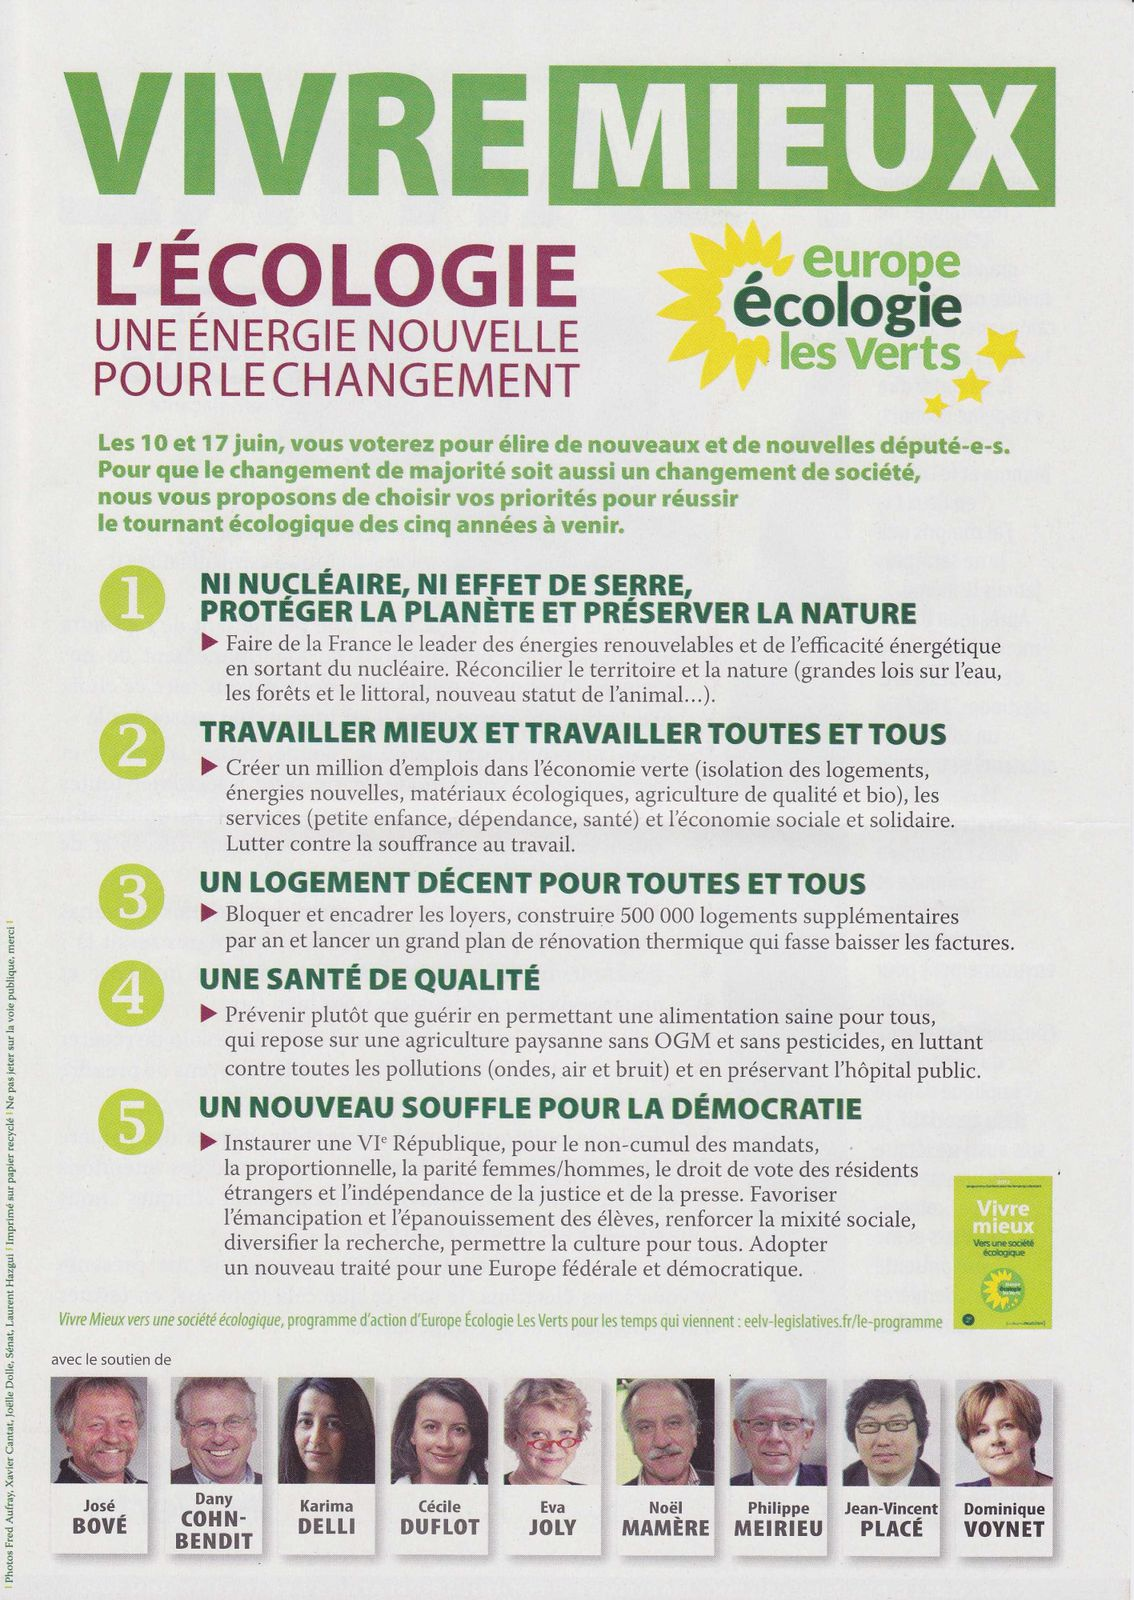 10-2012-legislative-9eme-Circonscription-76-Europe-Ecologie.jpg